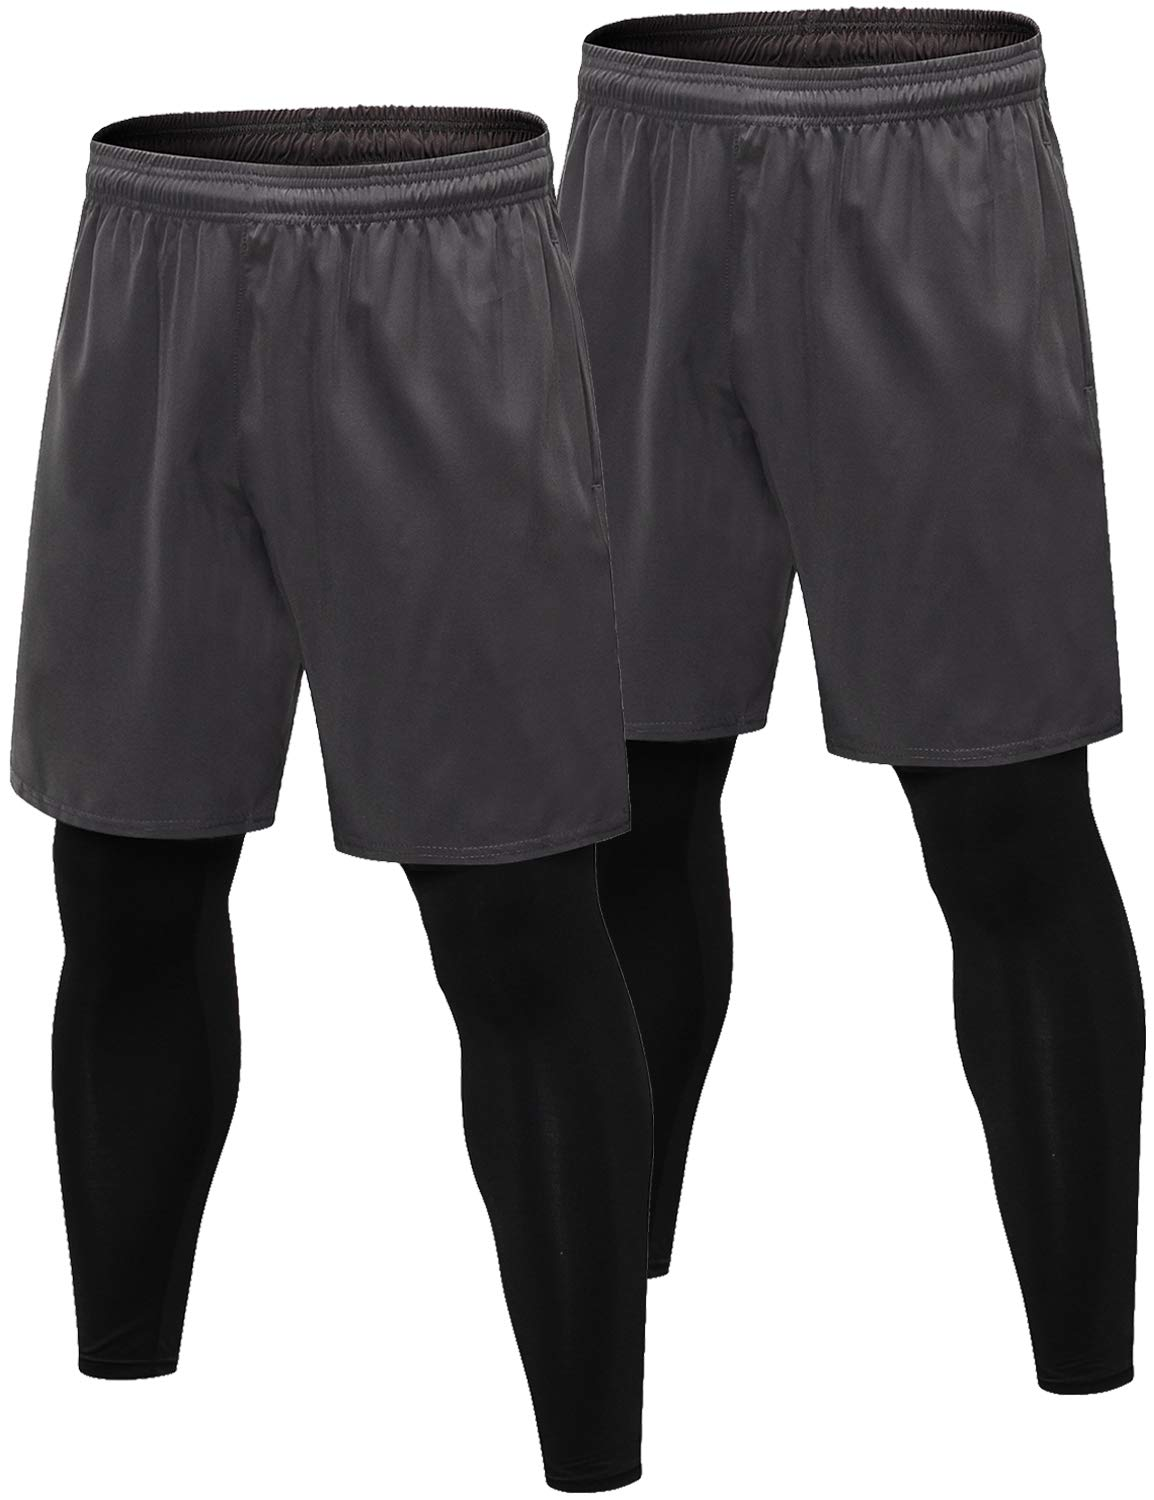 Lavento Men's 2-in-1 Running Shorts with Built-in Compression Leggings (2 Pack-3912 Gray,Small) by Lavento